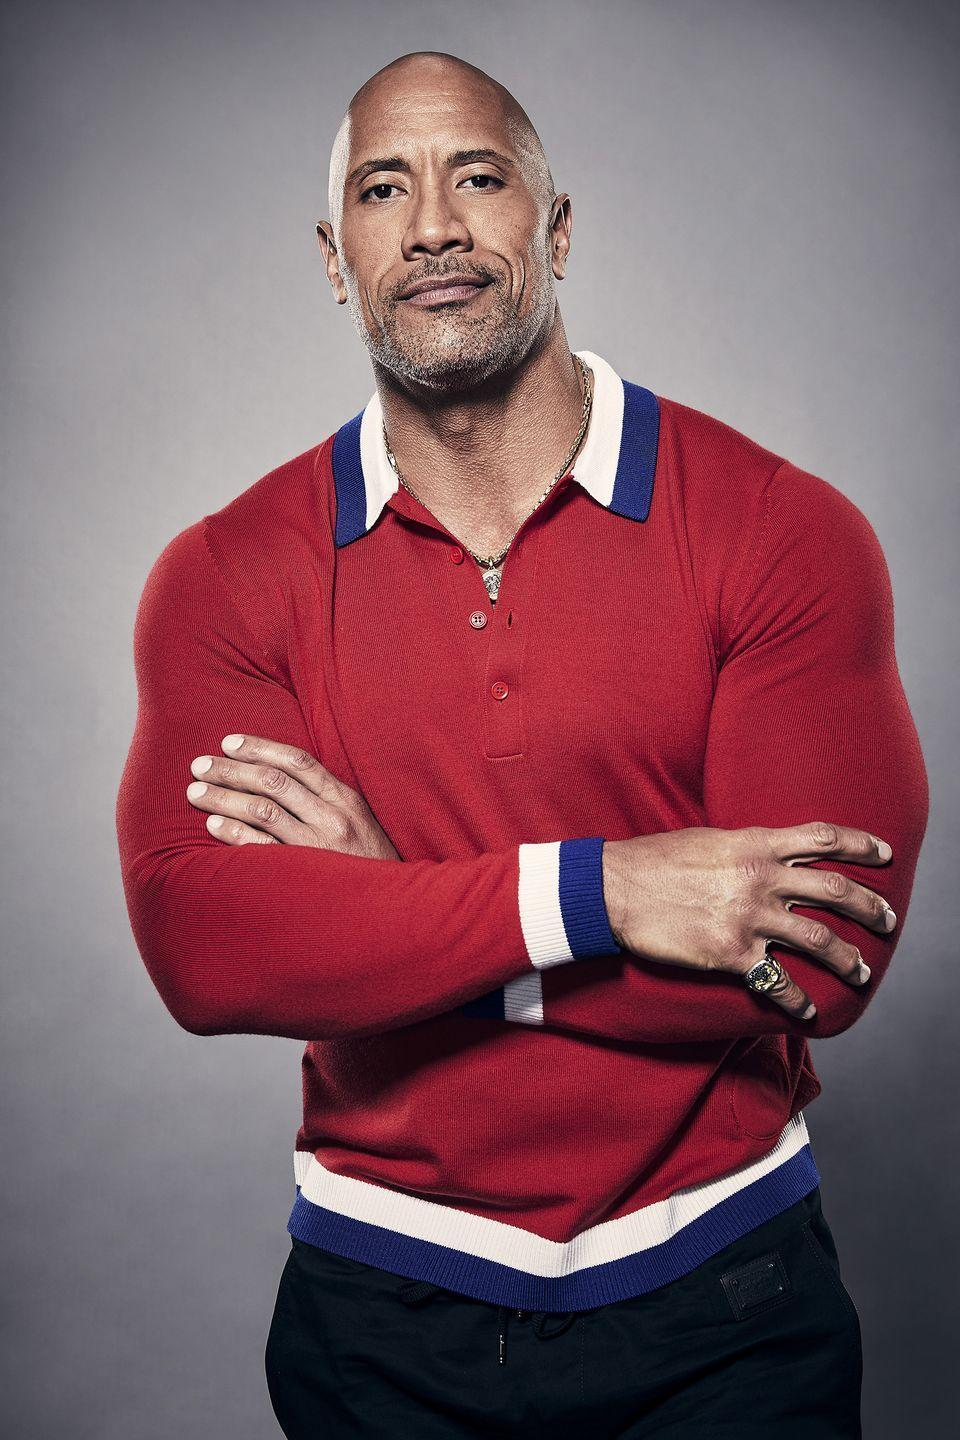 "<p>The Rock may be hiding his bugling biceps under a long sleeve shirt, but we can still tell he's got one crazy flex going on. The professional wrestler turned movie star is extremely dedicated to his fitness regime and <a href=""https://www.menshealth.com/fitness/a32266684/the-rock-dwayne-johnson-workout-split-quarantine/"" rel=""nofollow noopener"" target=""_blank"" data-ylk=""slk:recently released a new quarantine program"" class=""link rapid-noclick-resp"">recently released a new quarantine program</a>. </p>"